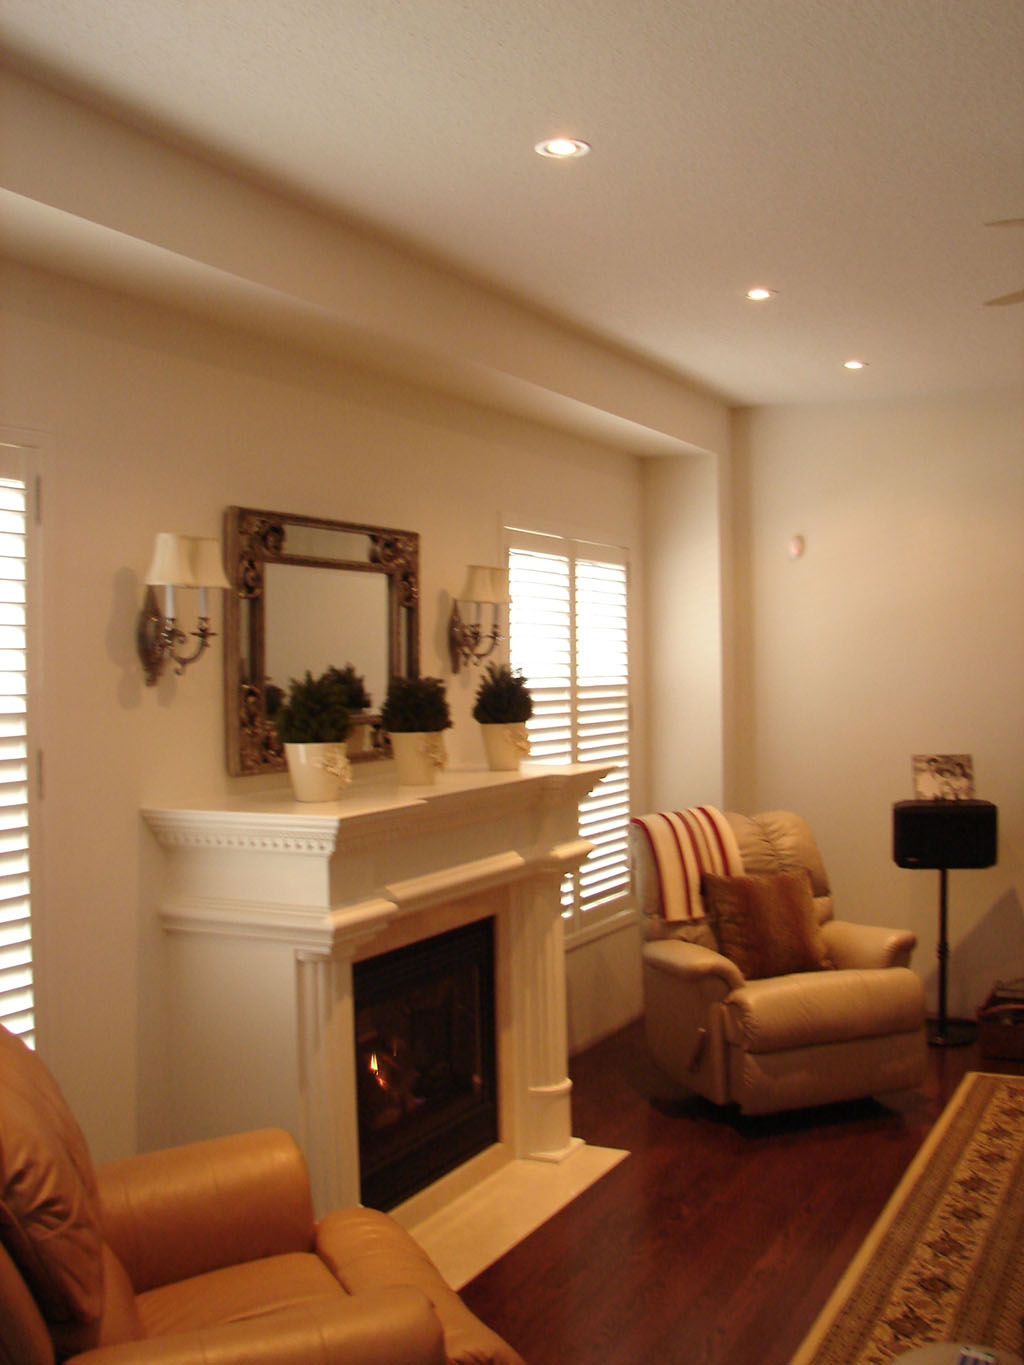 Samples of works by vicamp electrical services for Living room 3